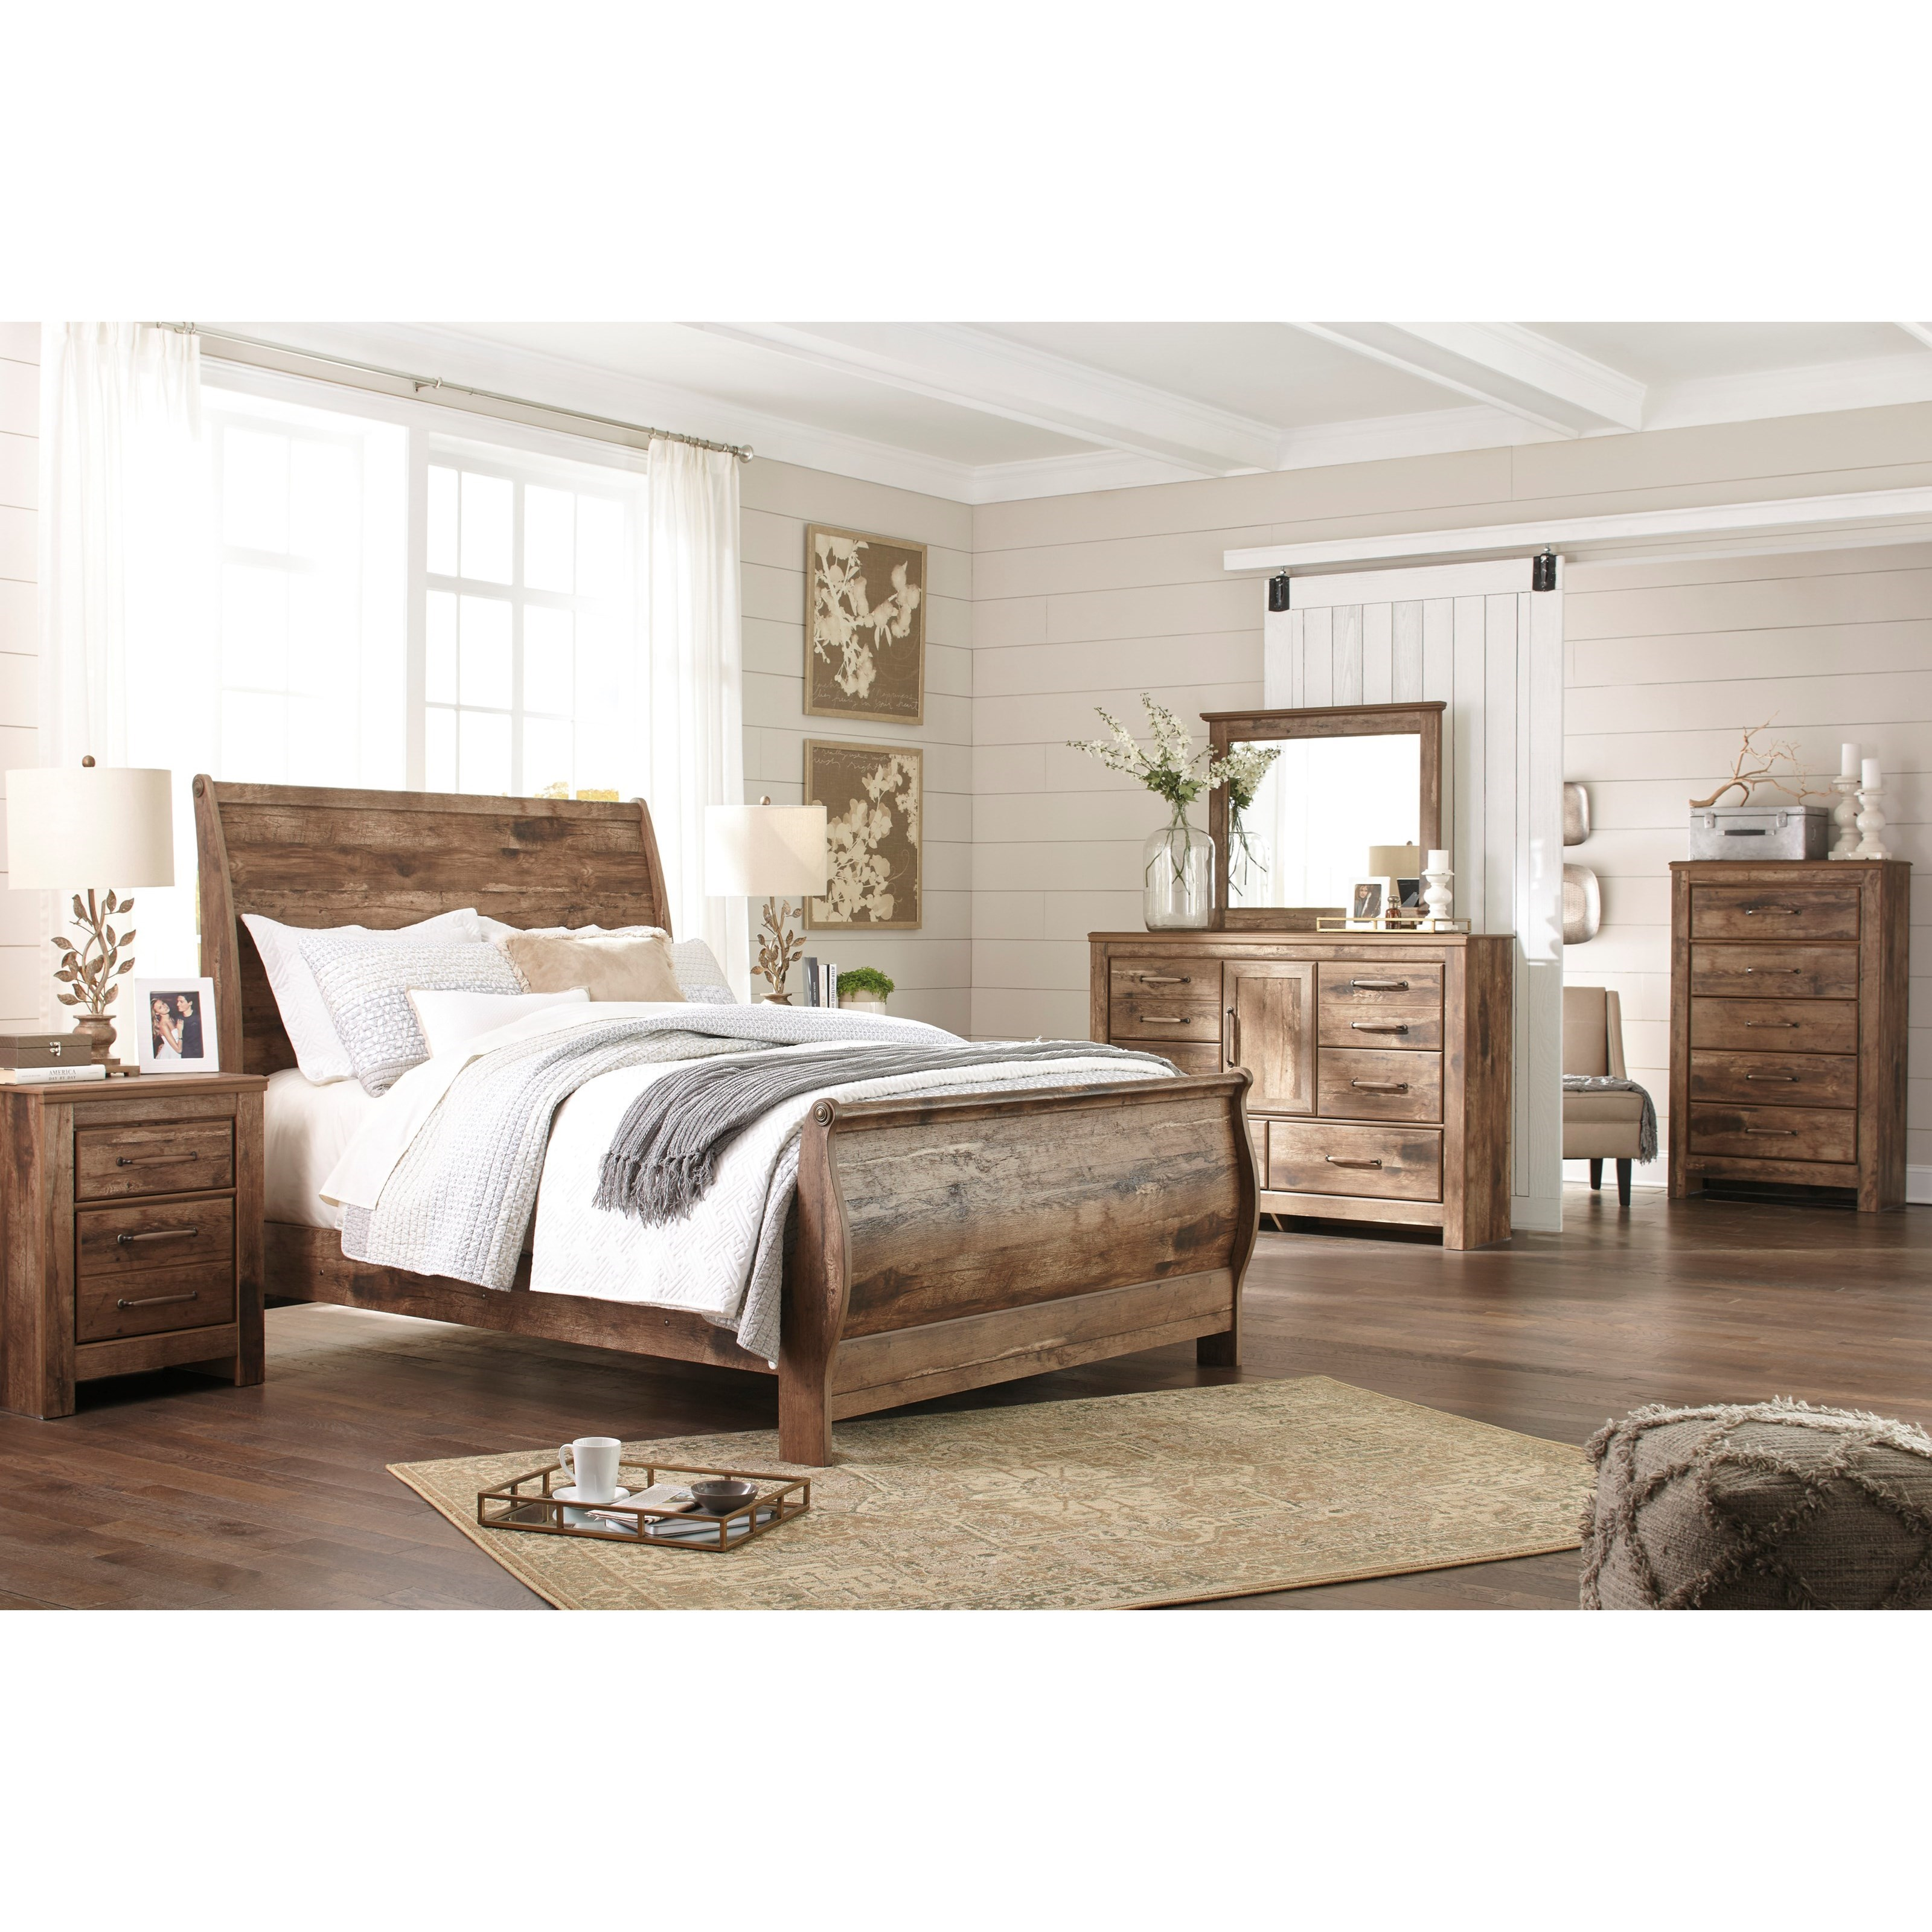 Signature Design By Ashley Blaneville Queen Bedroom Group Del Sol Furniture Bedroom Groups